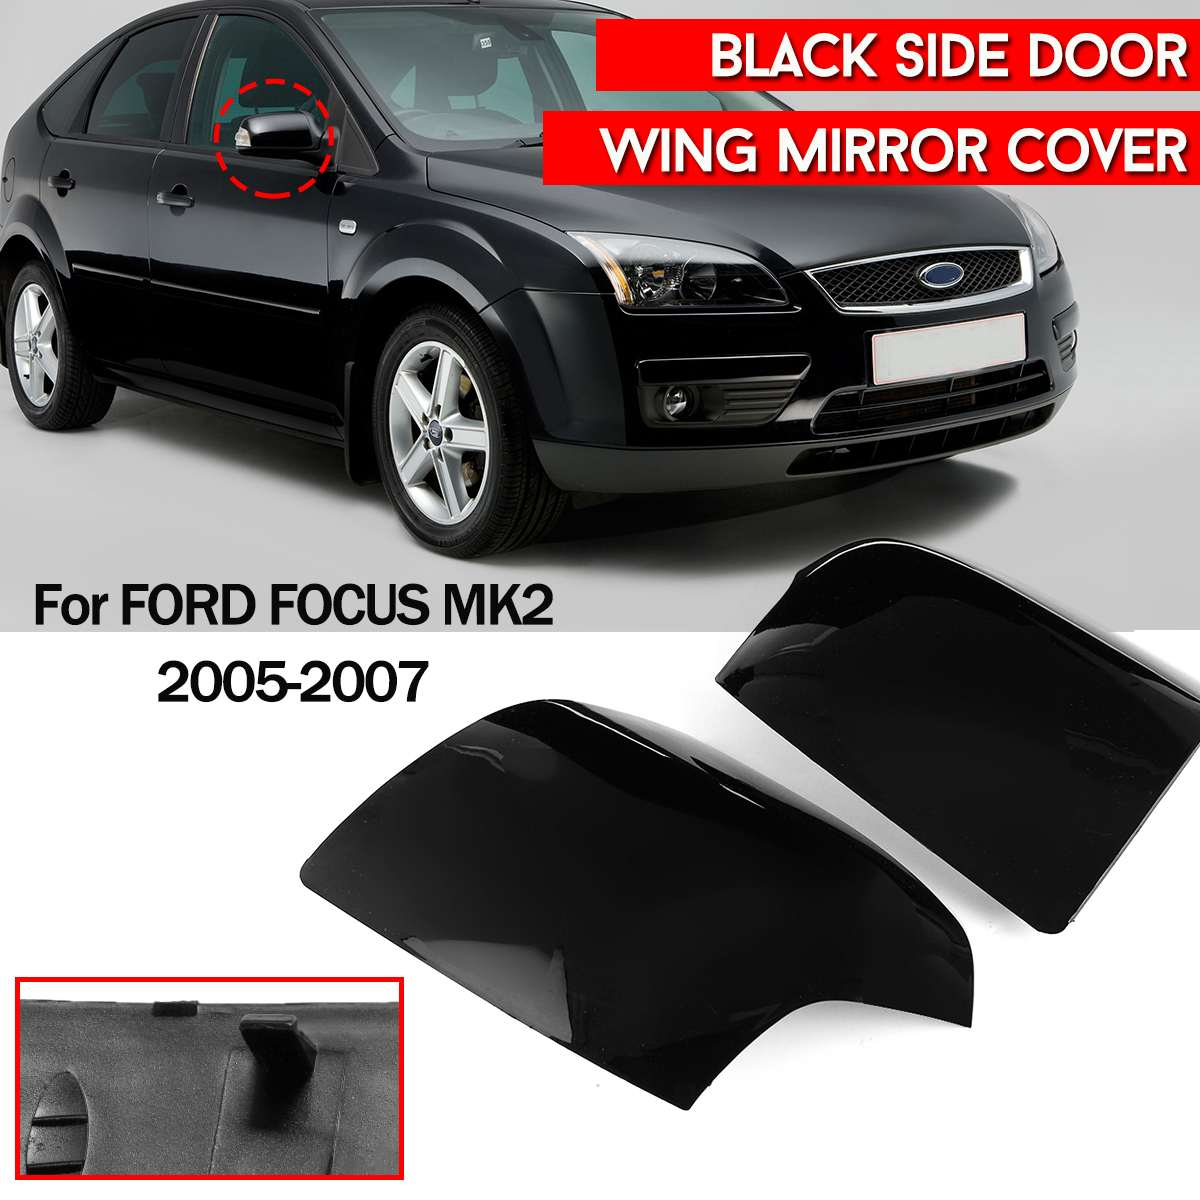 L/R For FORD for FOCUS MK2 2005 2007 ABS BLACK SIDE DOOR WING MIRROR COVER CAP CASING TRIM DRIVERS ST CC|Mirror & Covers| |  - title=